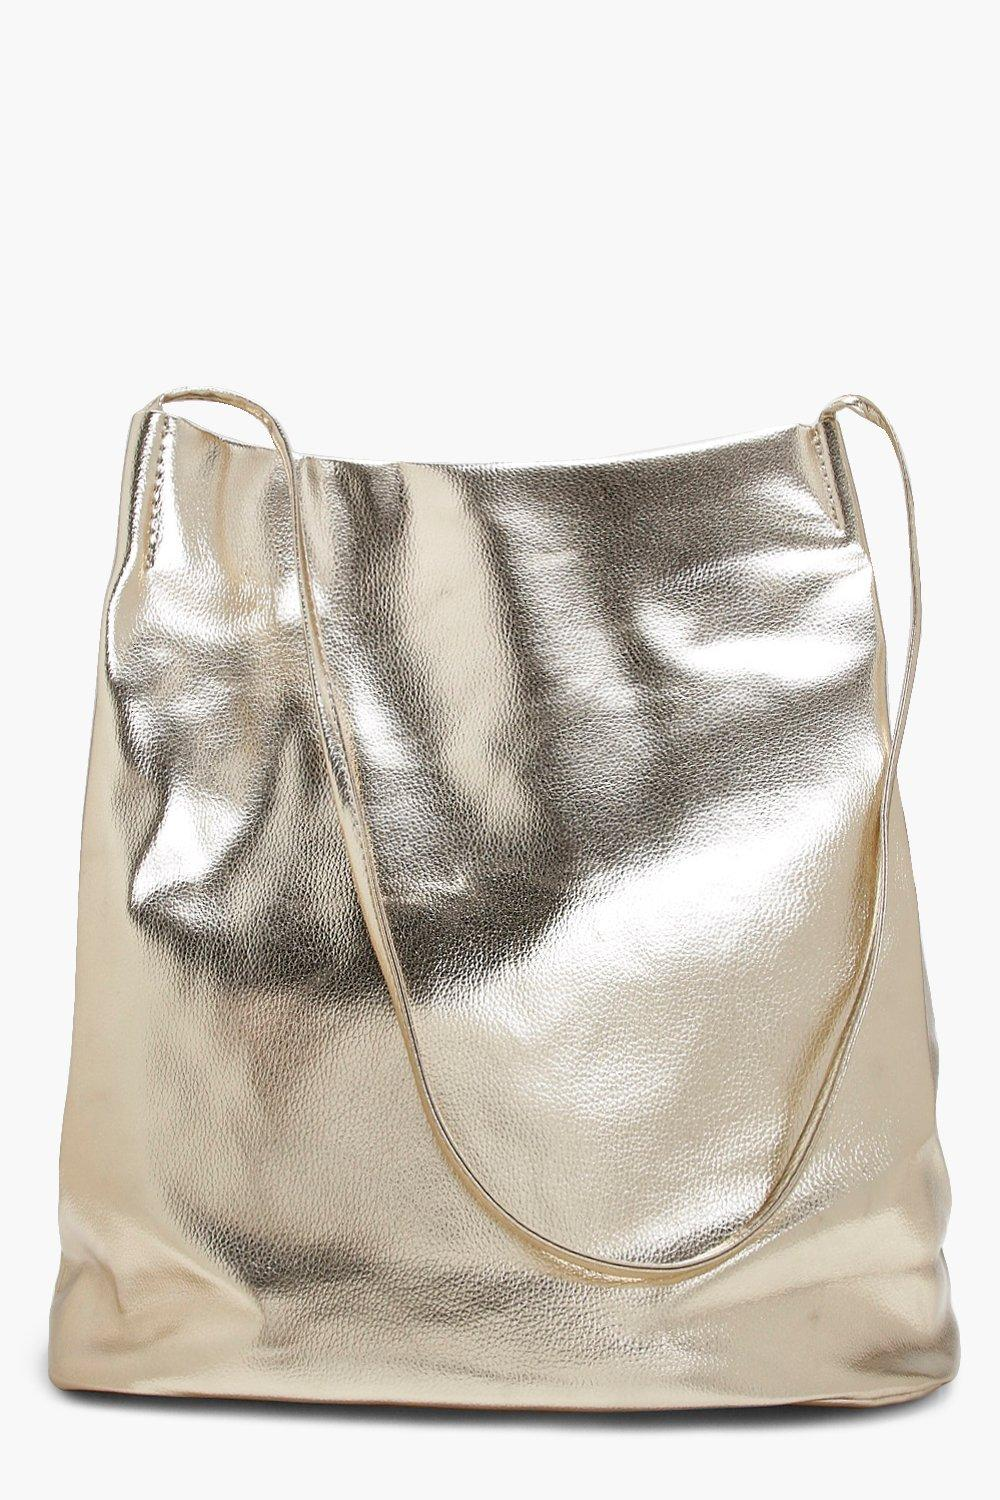 Metallic Duffle Cross Body - gold - Laura Metallic